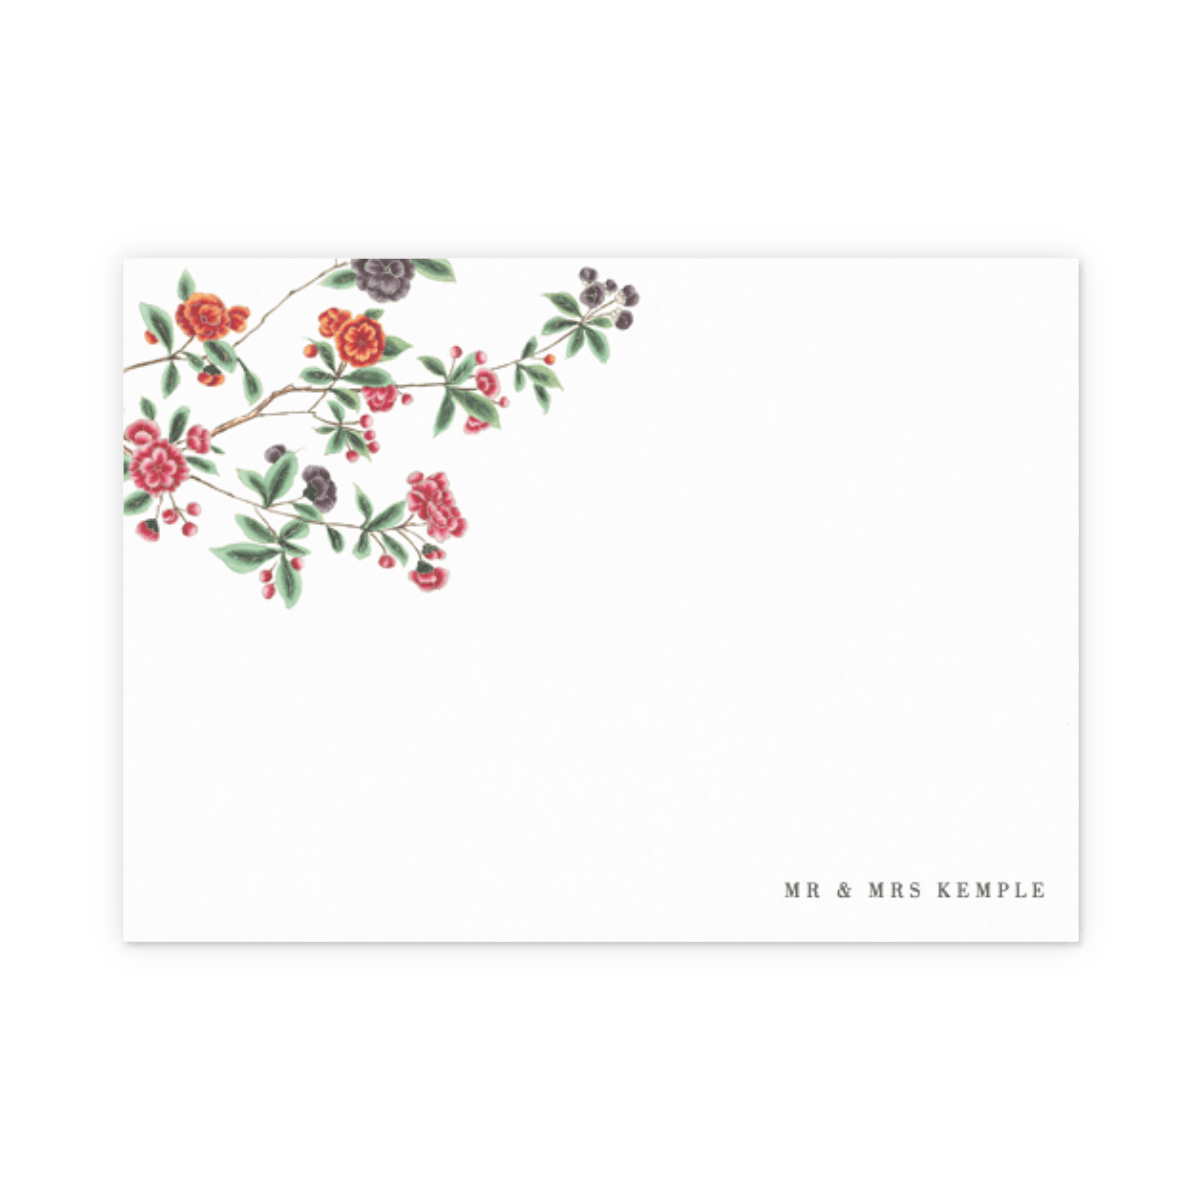 Https%3a%2f%2fwww.papier.com%2fproduct image%2f33947%2f10%2fintricate floral branches 8481 front 1518529091.png?ixlib=rb 1.1